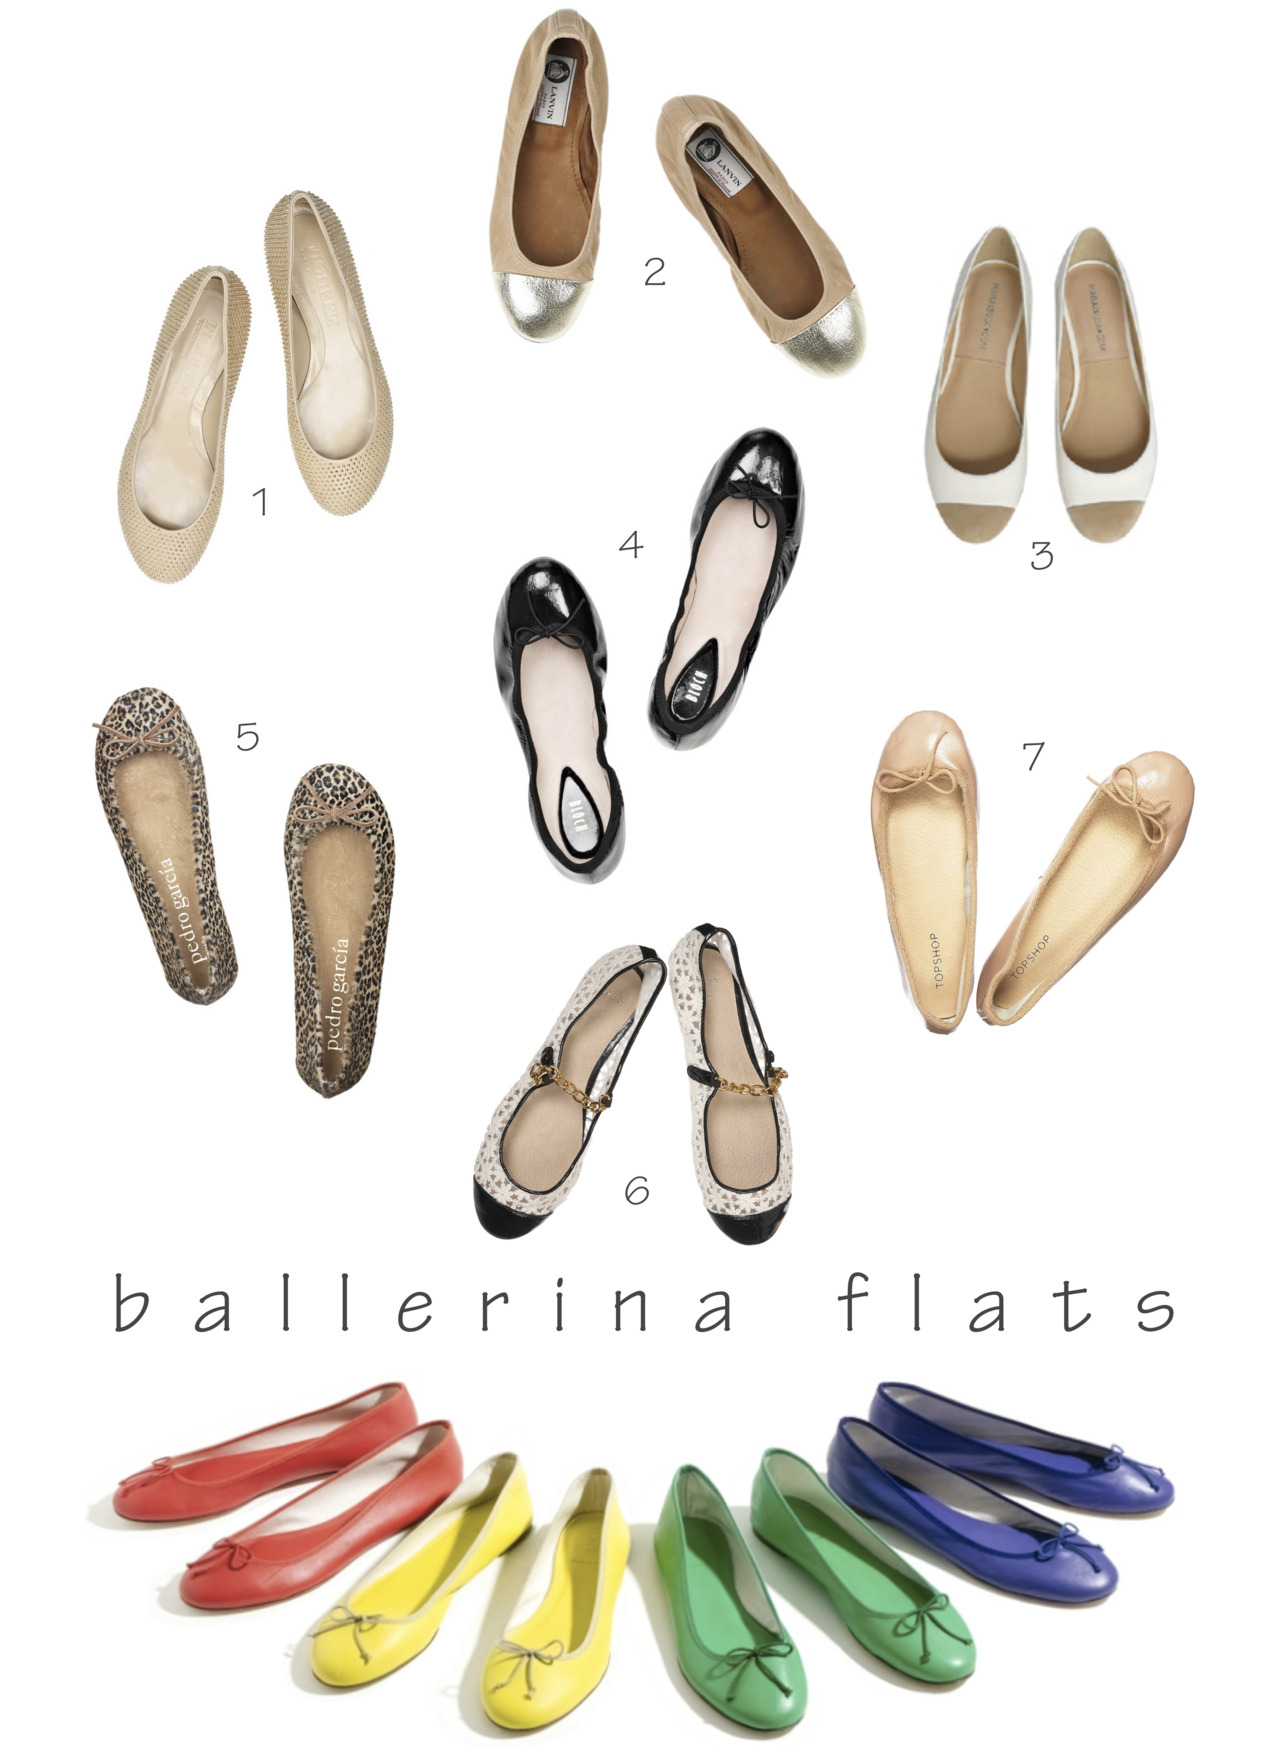 Rosa Loves… Ballerina Flats. I basically live in ballerina flats not only because they are perfect for walking around the city, but also because they go with any outfit. Among my favorite types of ballerina flats are: a classic black pair for a chic look à la Audrey Hepburn,  a nude ballerina flat because it goes with everything and elongates the leg,  a fun leopard print,  an elegant two-tone version,  and colorful flats to add a pop of color to an outfit.  Do you love ballerina flats as much as I do? {Photos via 1, 2, 3, 4, 5, 6, 7, and J.Crew}